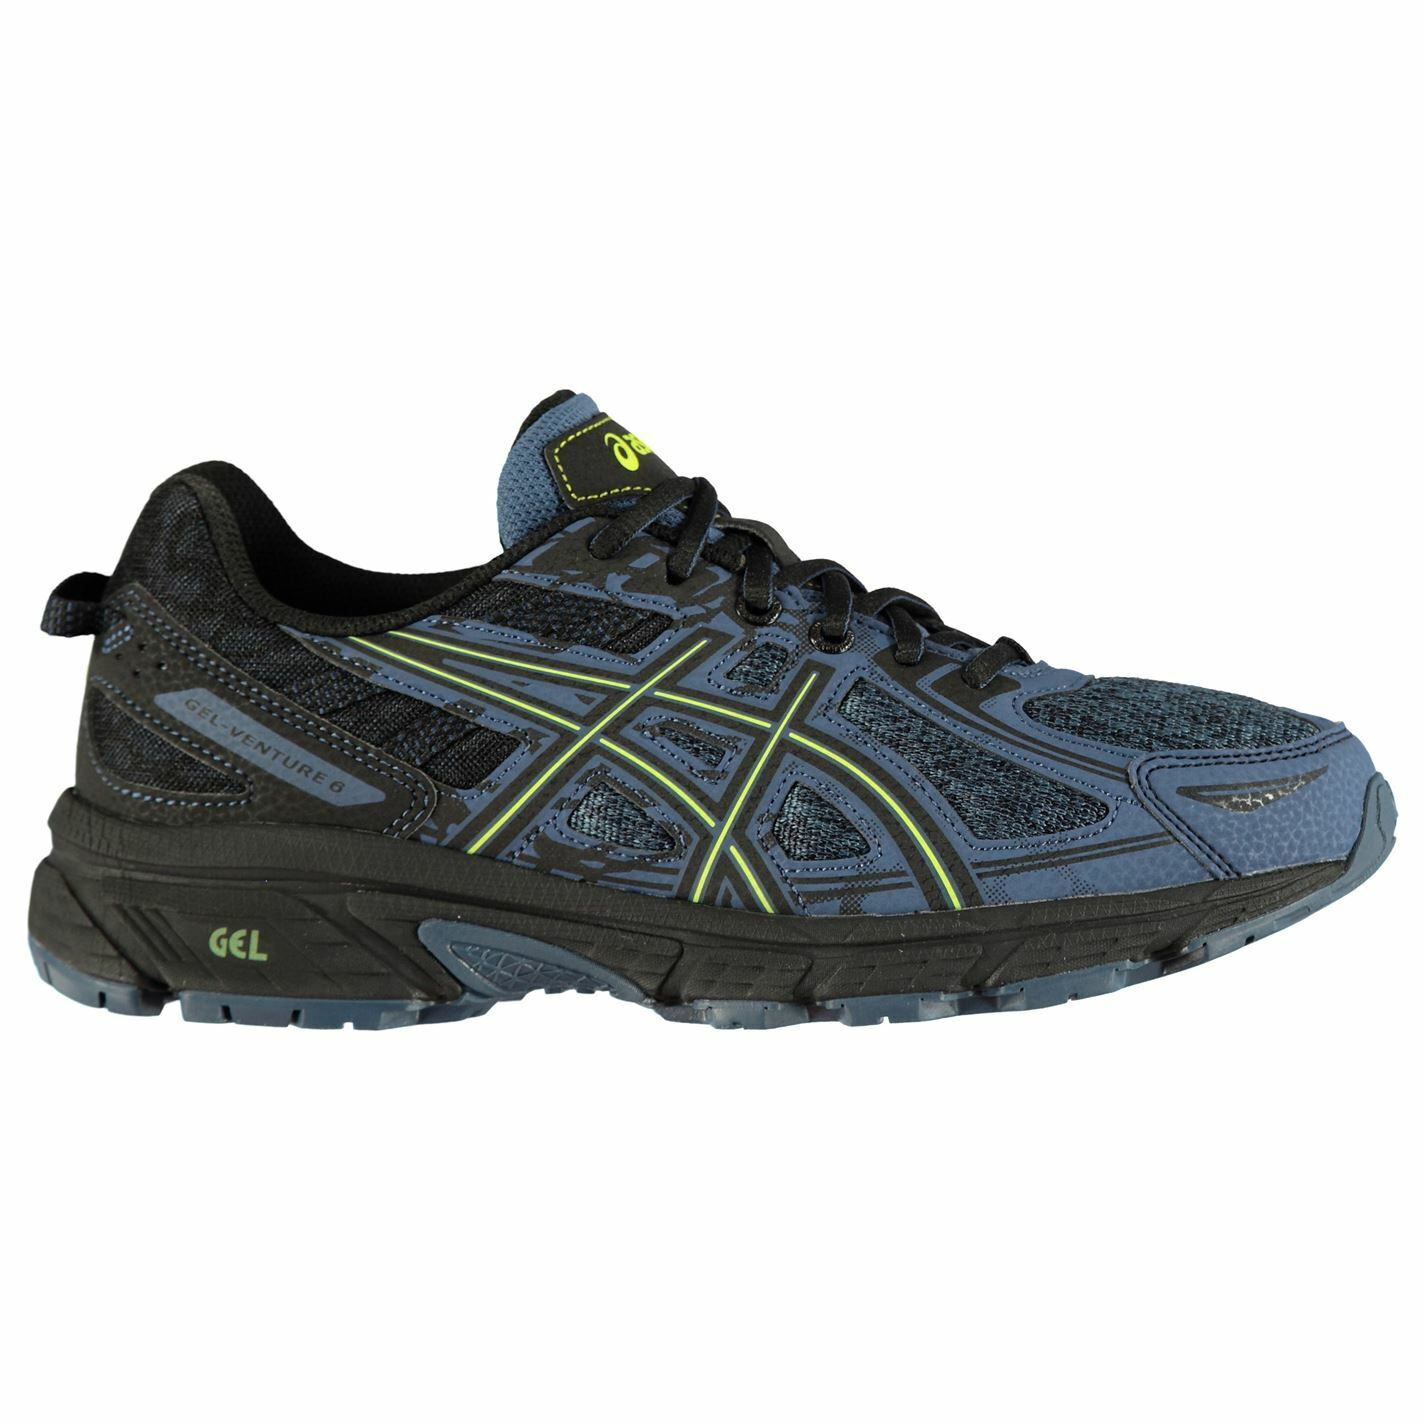 Asics Mens Gel Venture 6 Trail Running shoes Training